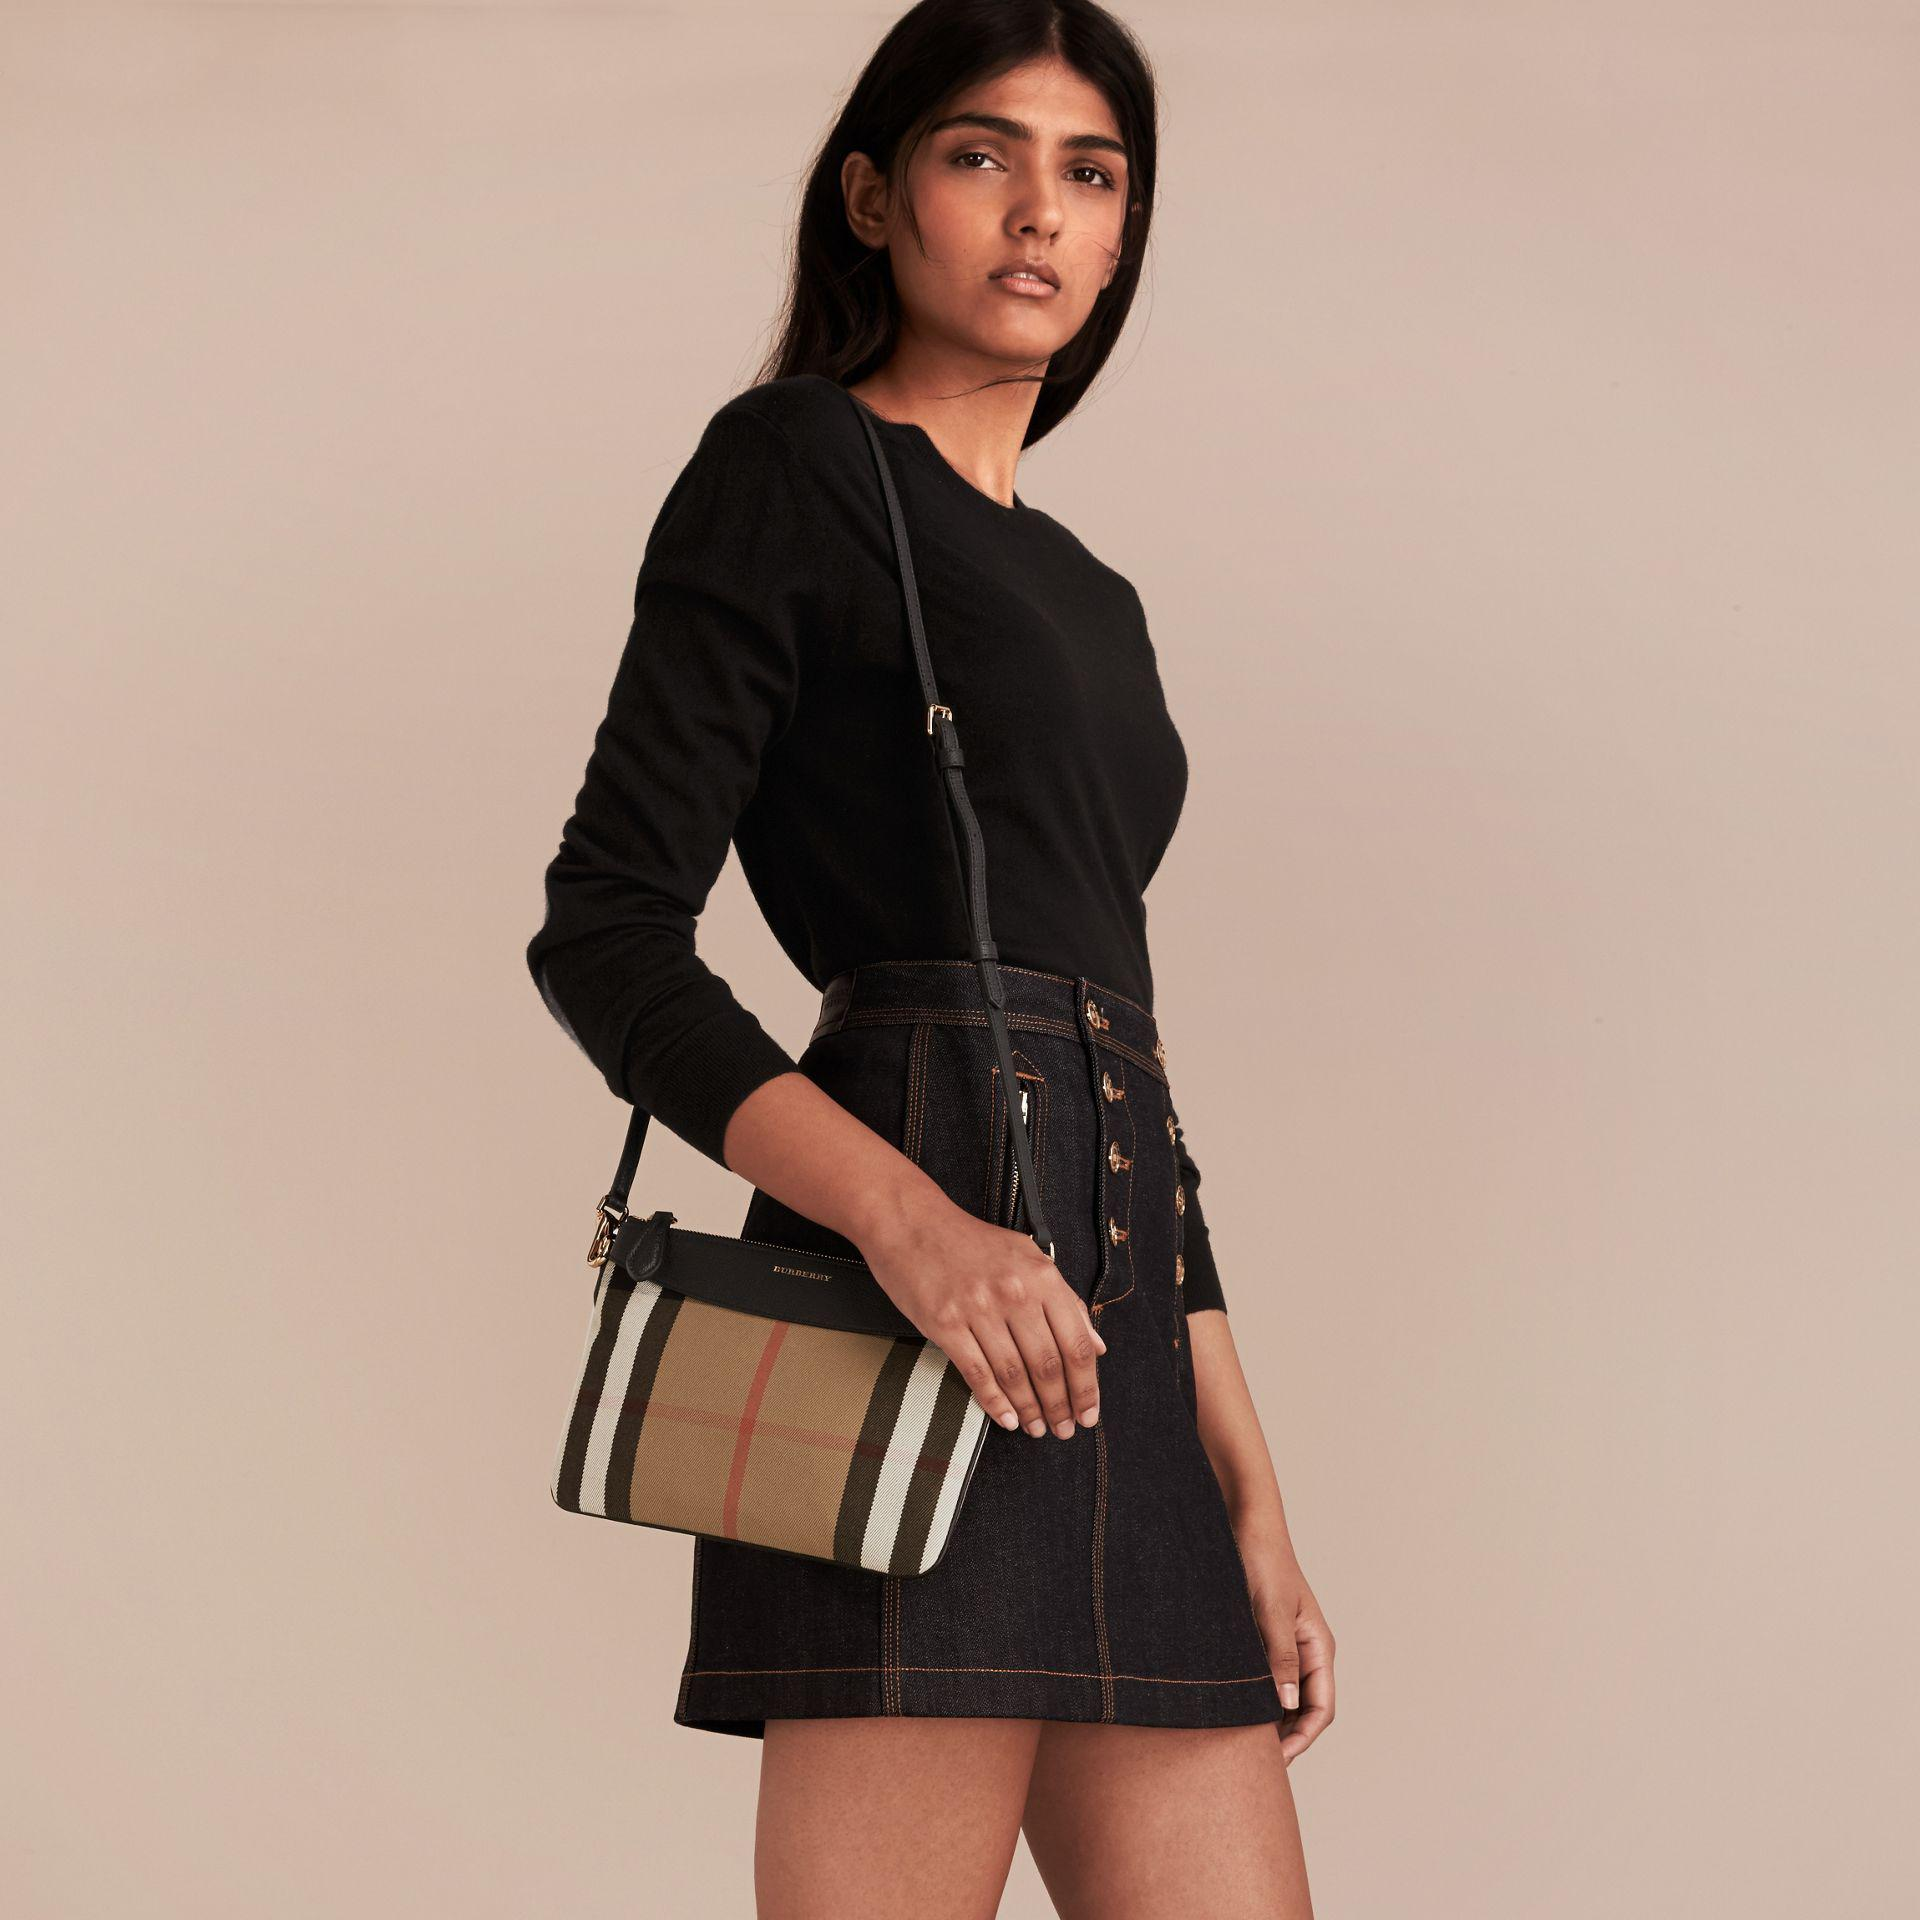 Lyst - Burberry House Check And Leather Clutch Bag in Black f5fe12c0da8e8